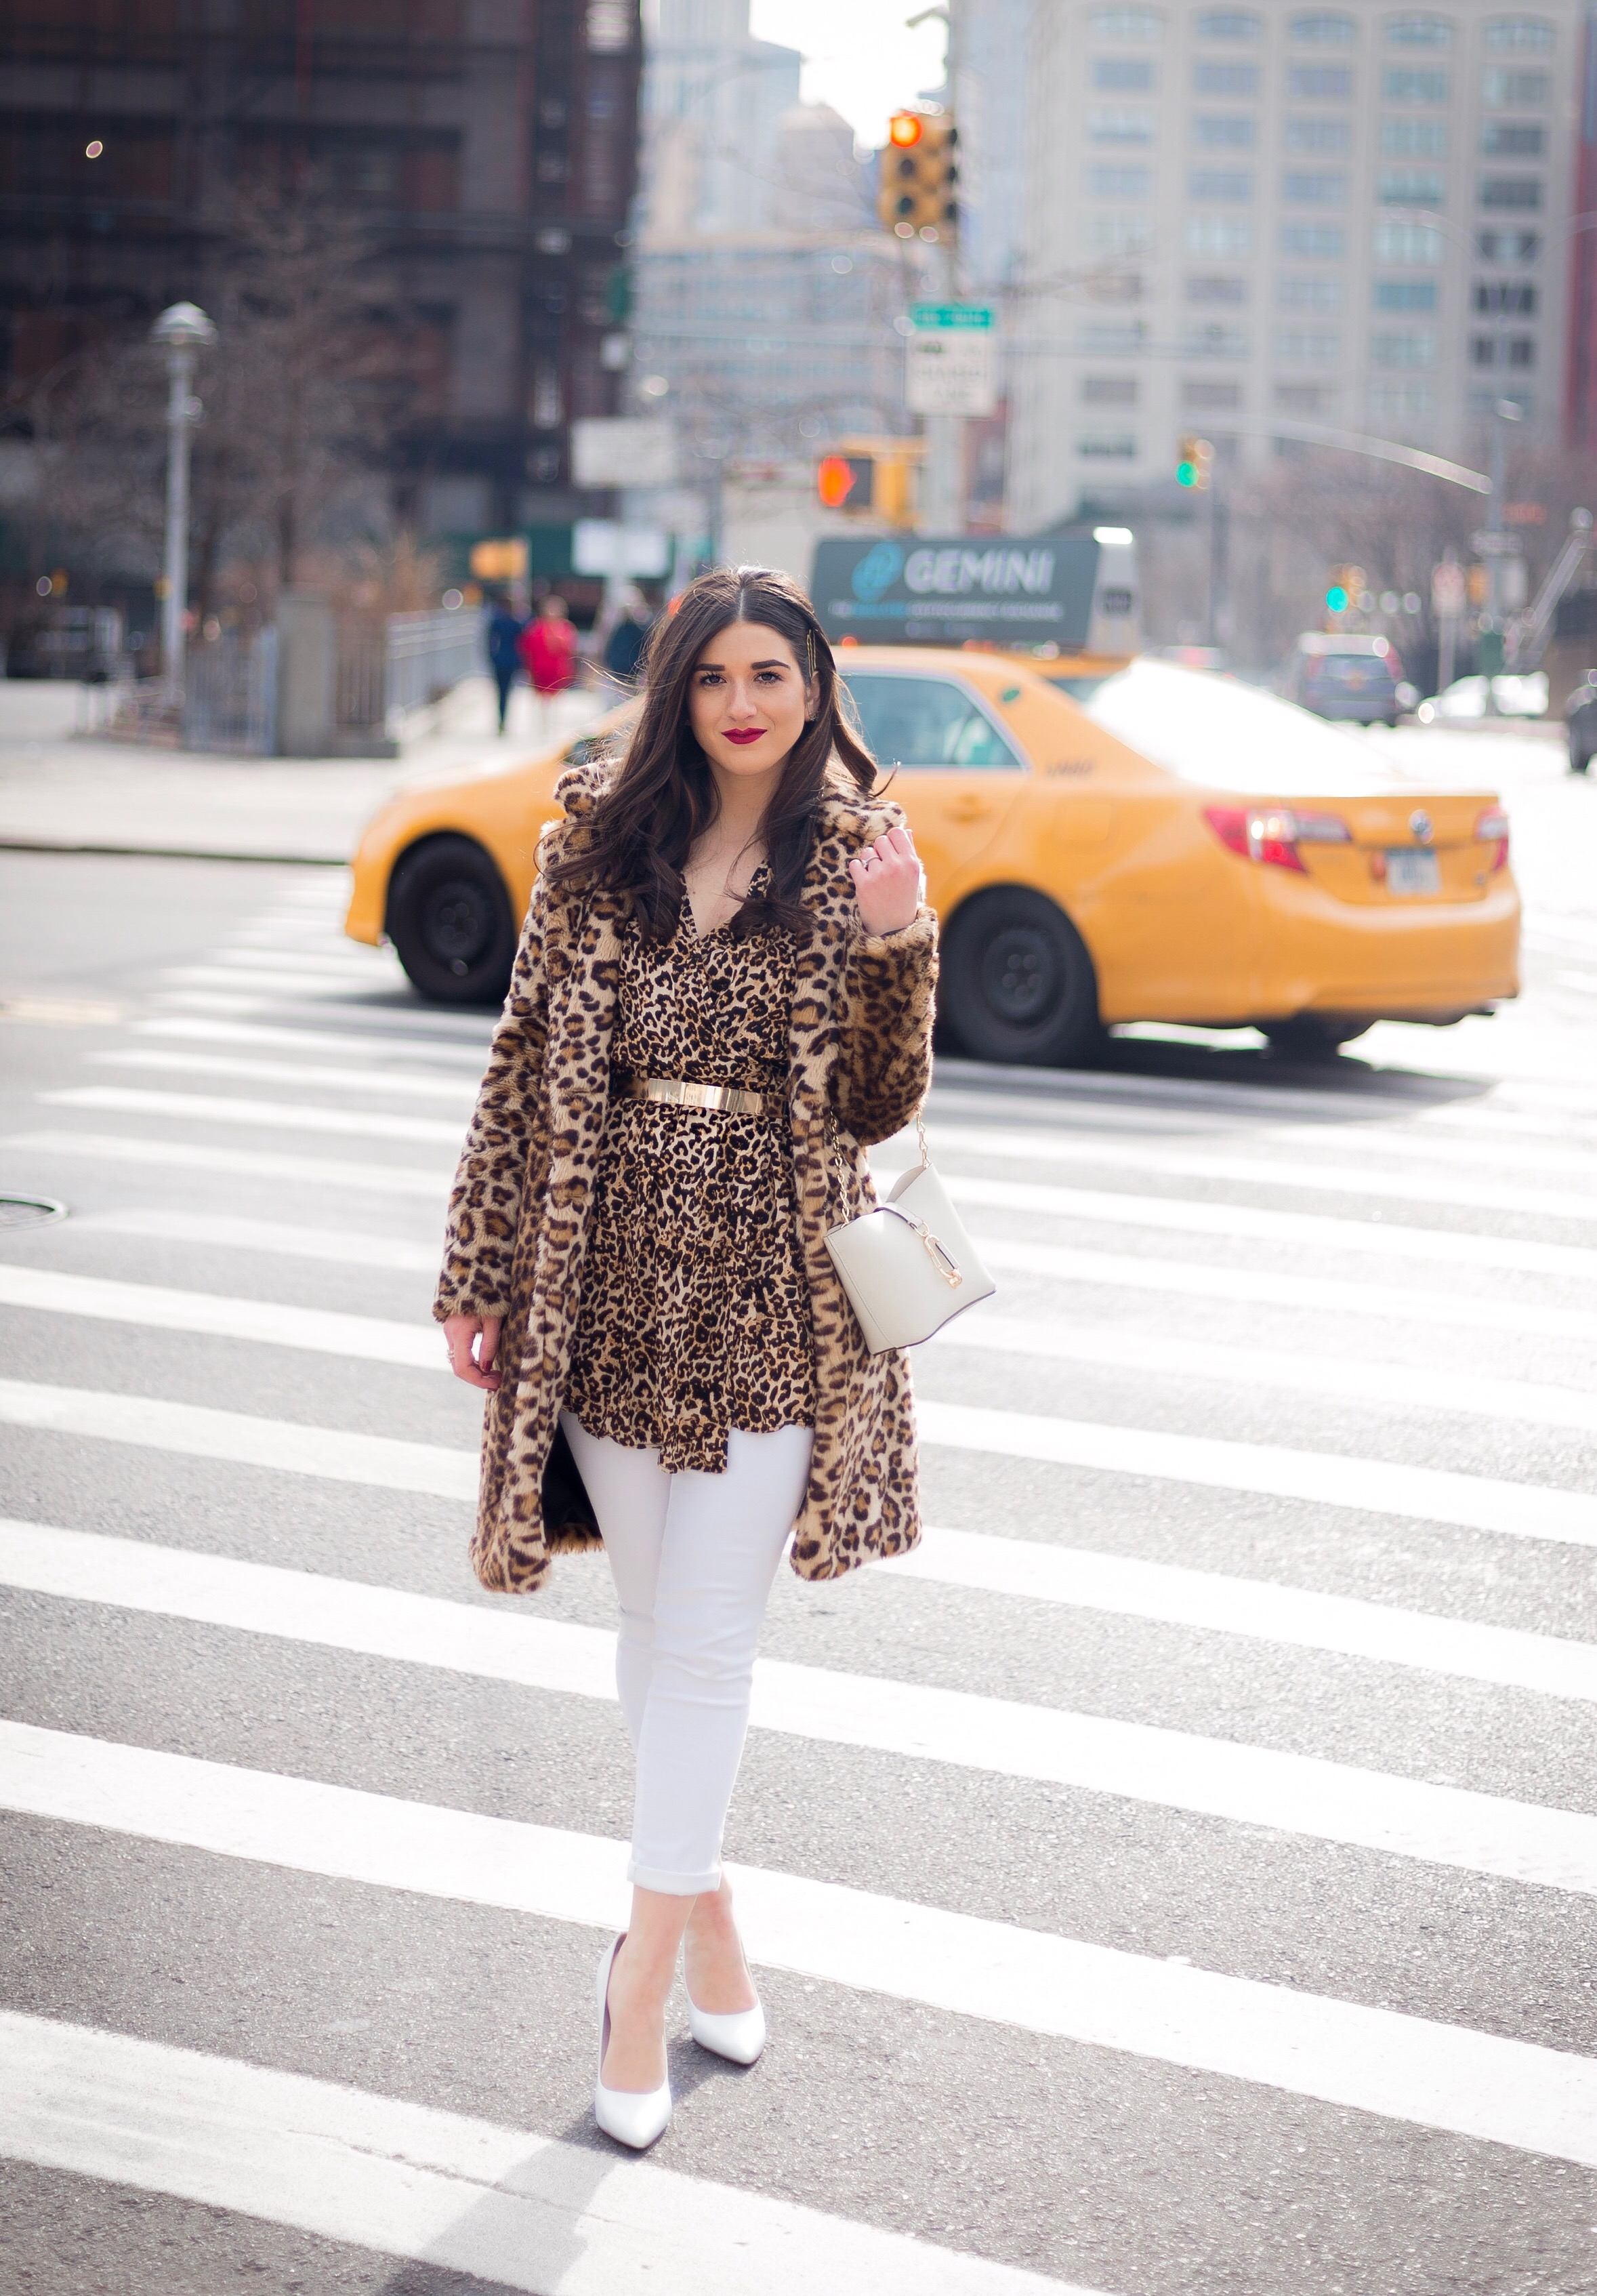 Dressing Up My Democracy Denim Esther Santer Fashion Blog NYC Street Style Blogger Outfit OOTD Trendy Shopping White Jeans Leopard Top Coat Inspo Bobby Pins Hair Trend White Heels Chaya Ross Photography Gold Belt Cream Chain Small Bag Inspiration Wear.jpg